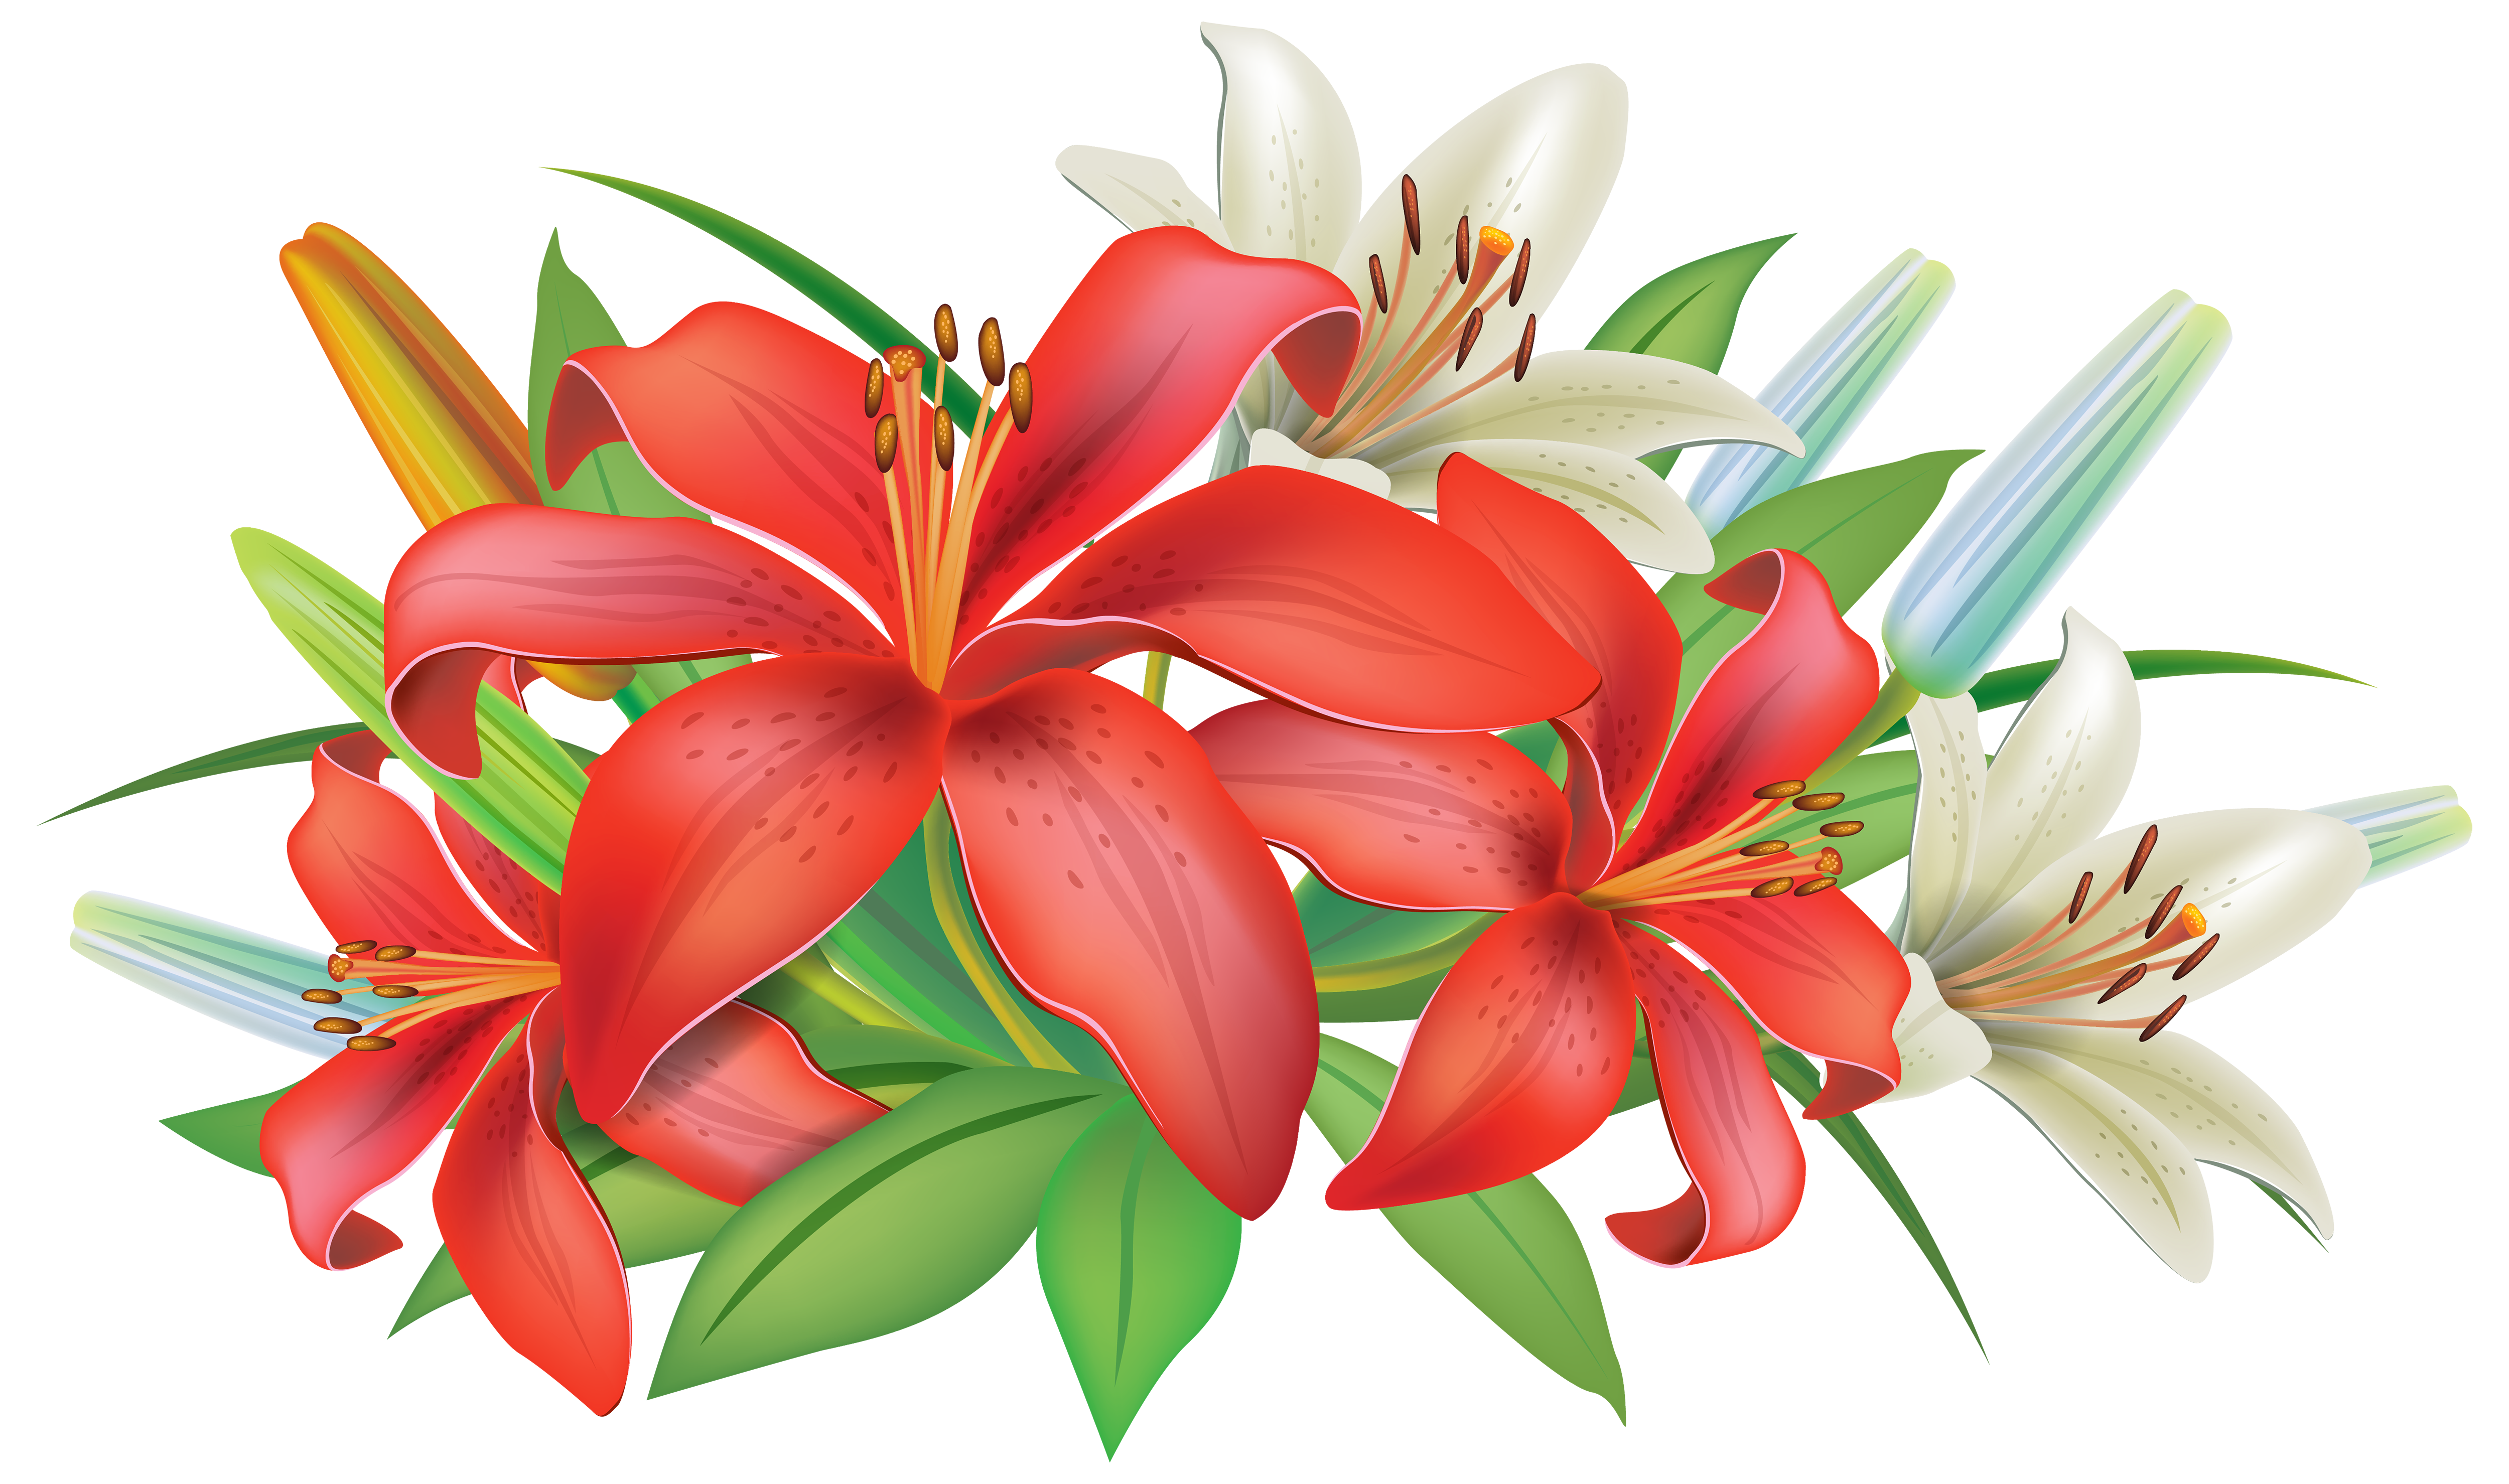 Red Lilies Flowers Decoration PNG Clipart Image Flower